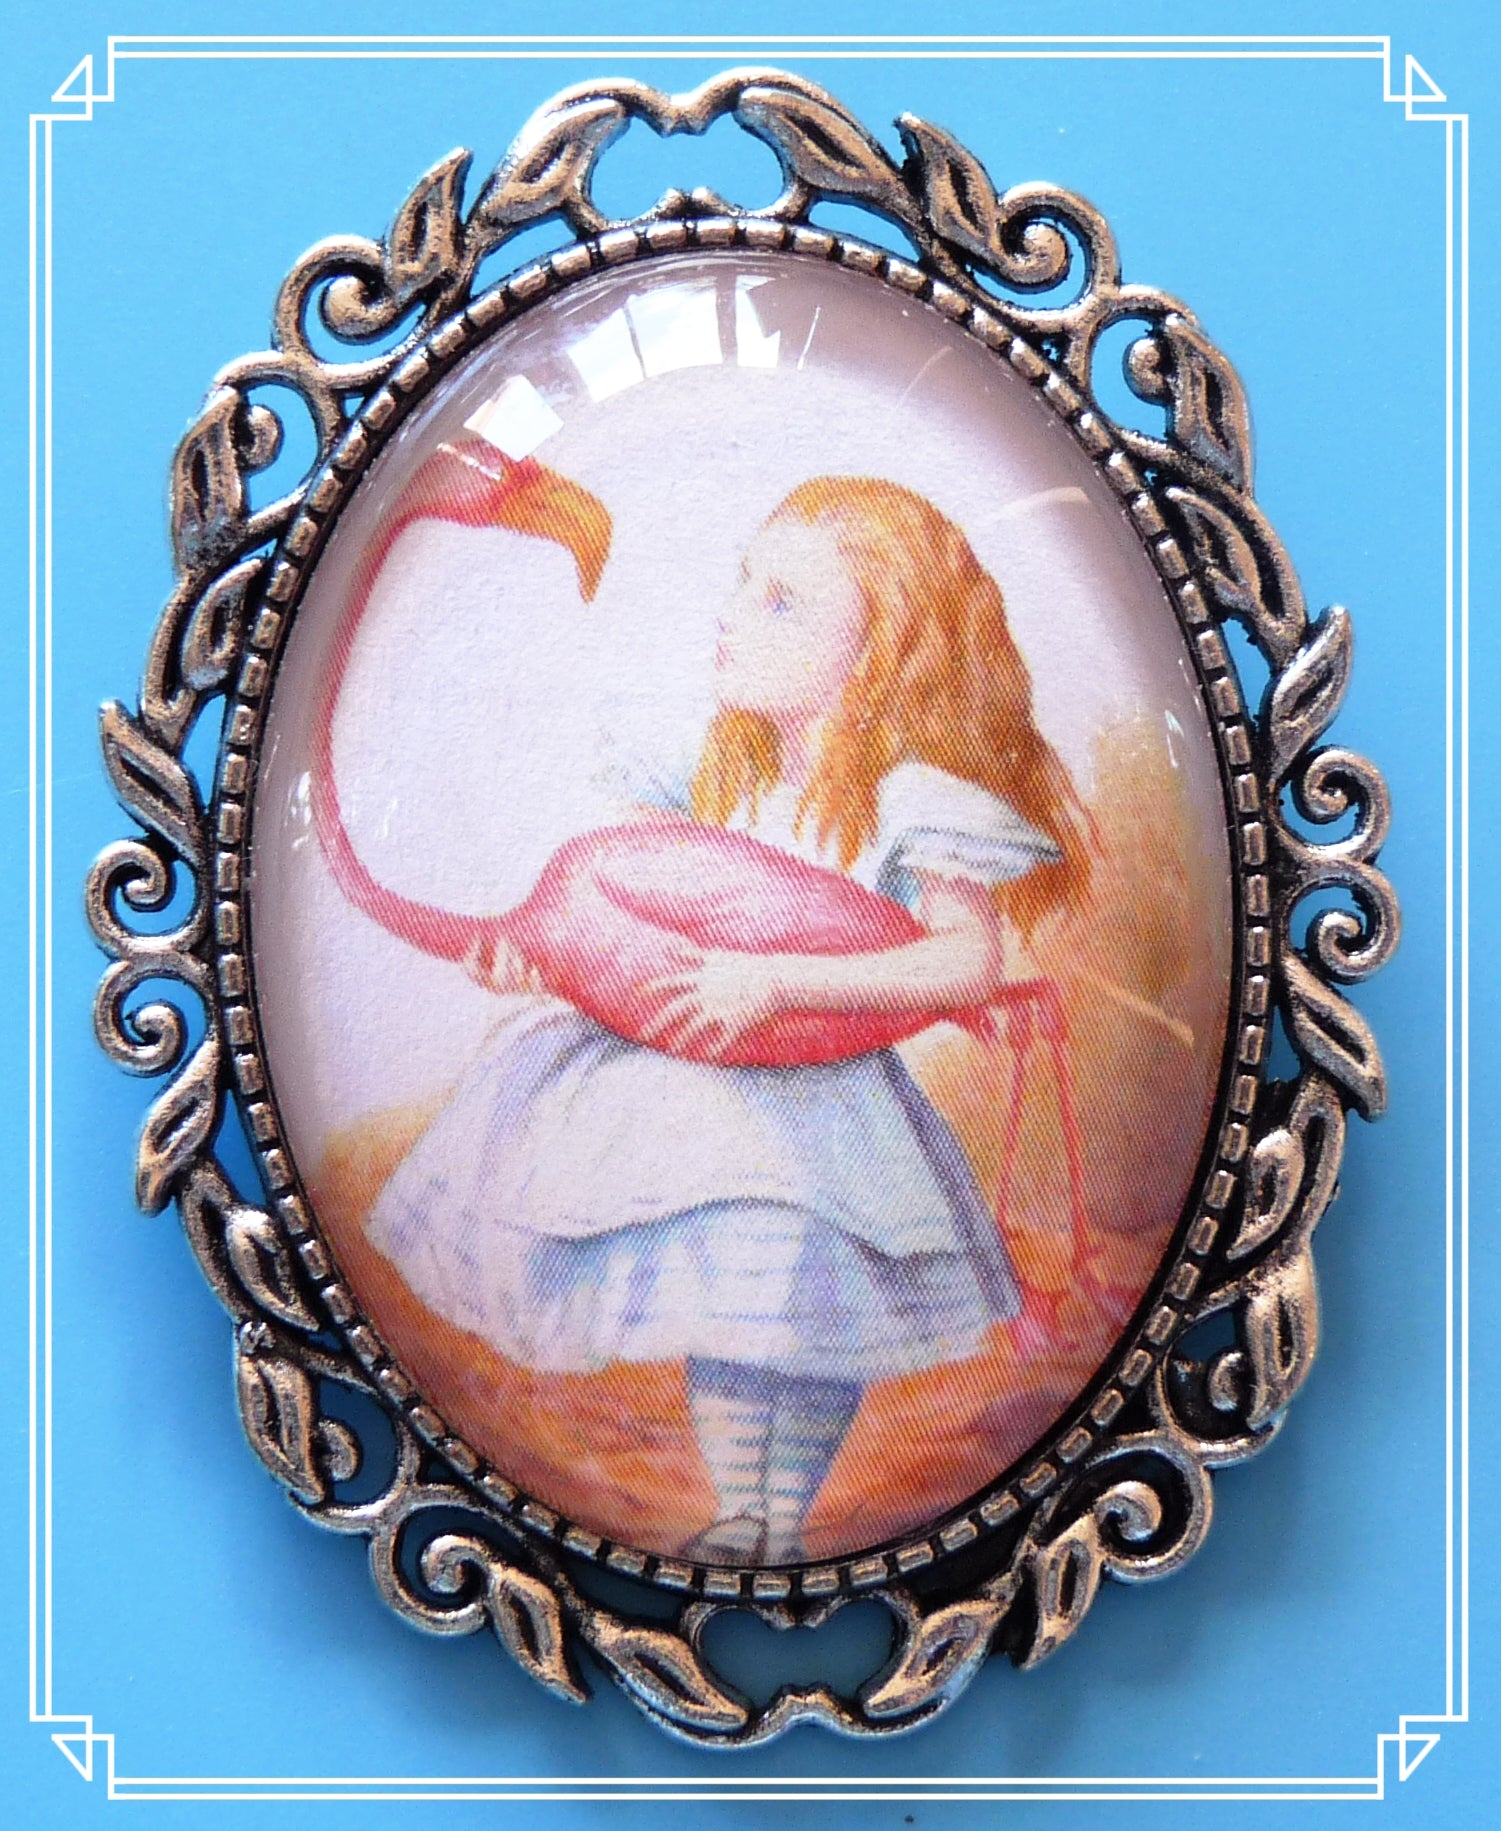 Alice with flamingo brooch is an illustration by John Tenniel for the original Alice in Wonderland books.